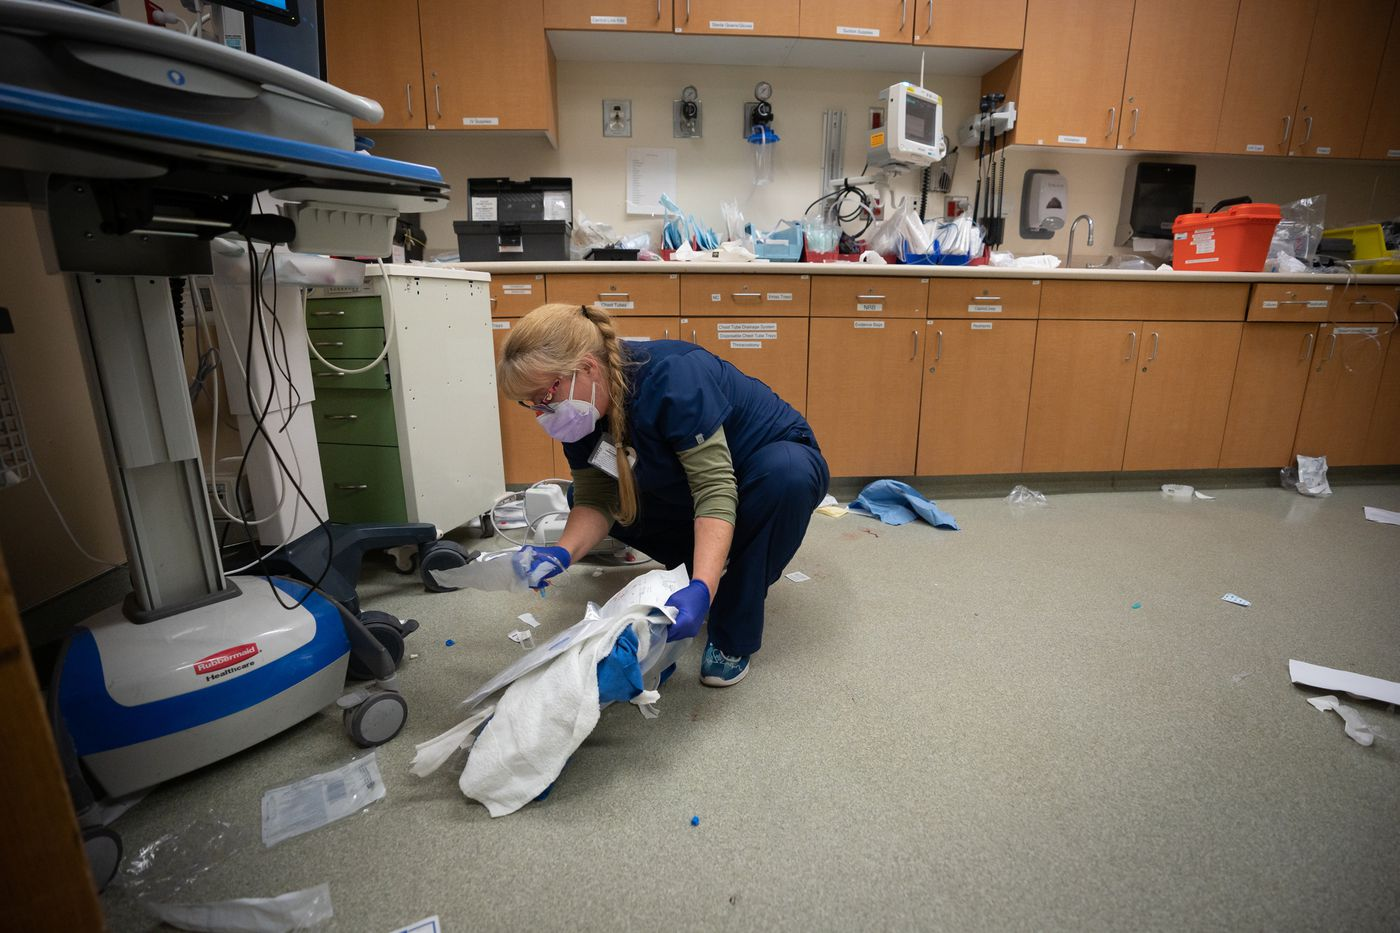 Cyndy Martinez, an ER nurse at Suburban Hospital, cleans up the floor inside the trauma room after the staff intubated and stabilized a critically ill patient. Martinez said she wanted to safely dispose of potential biohazards to help protect the hospital's cleaning staff.